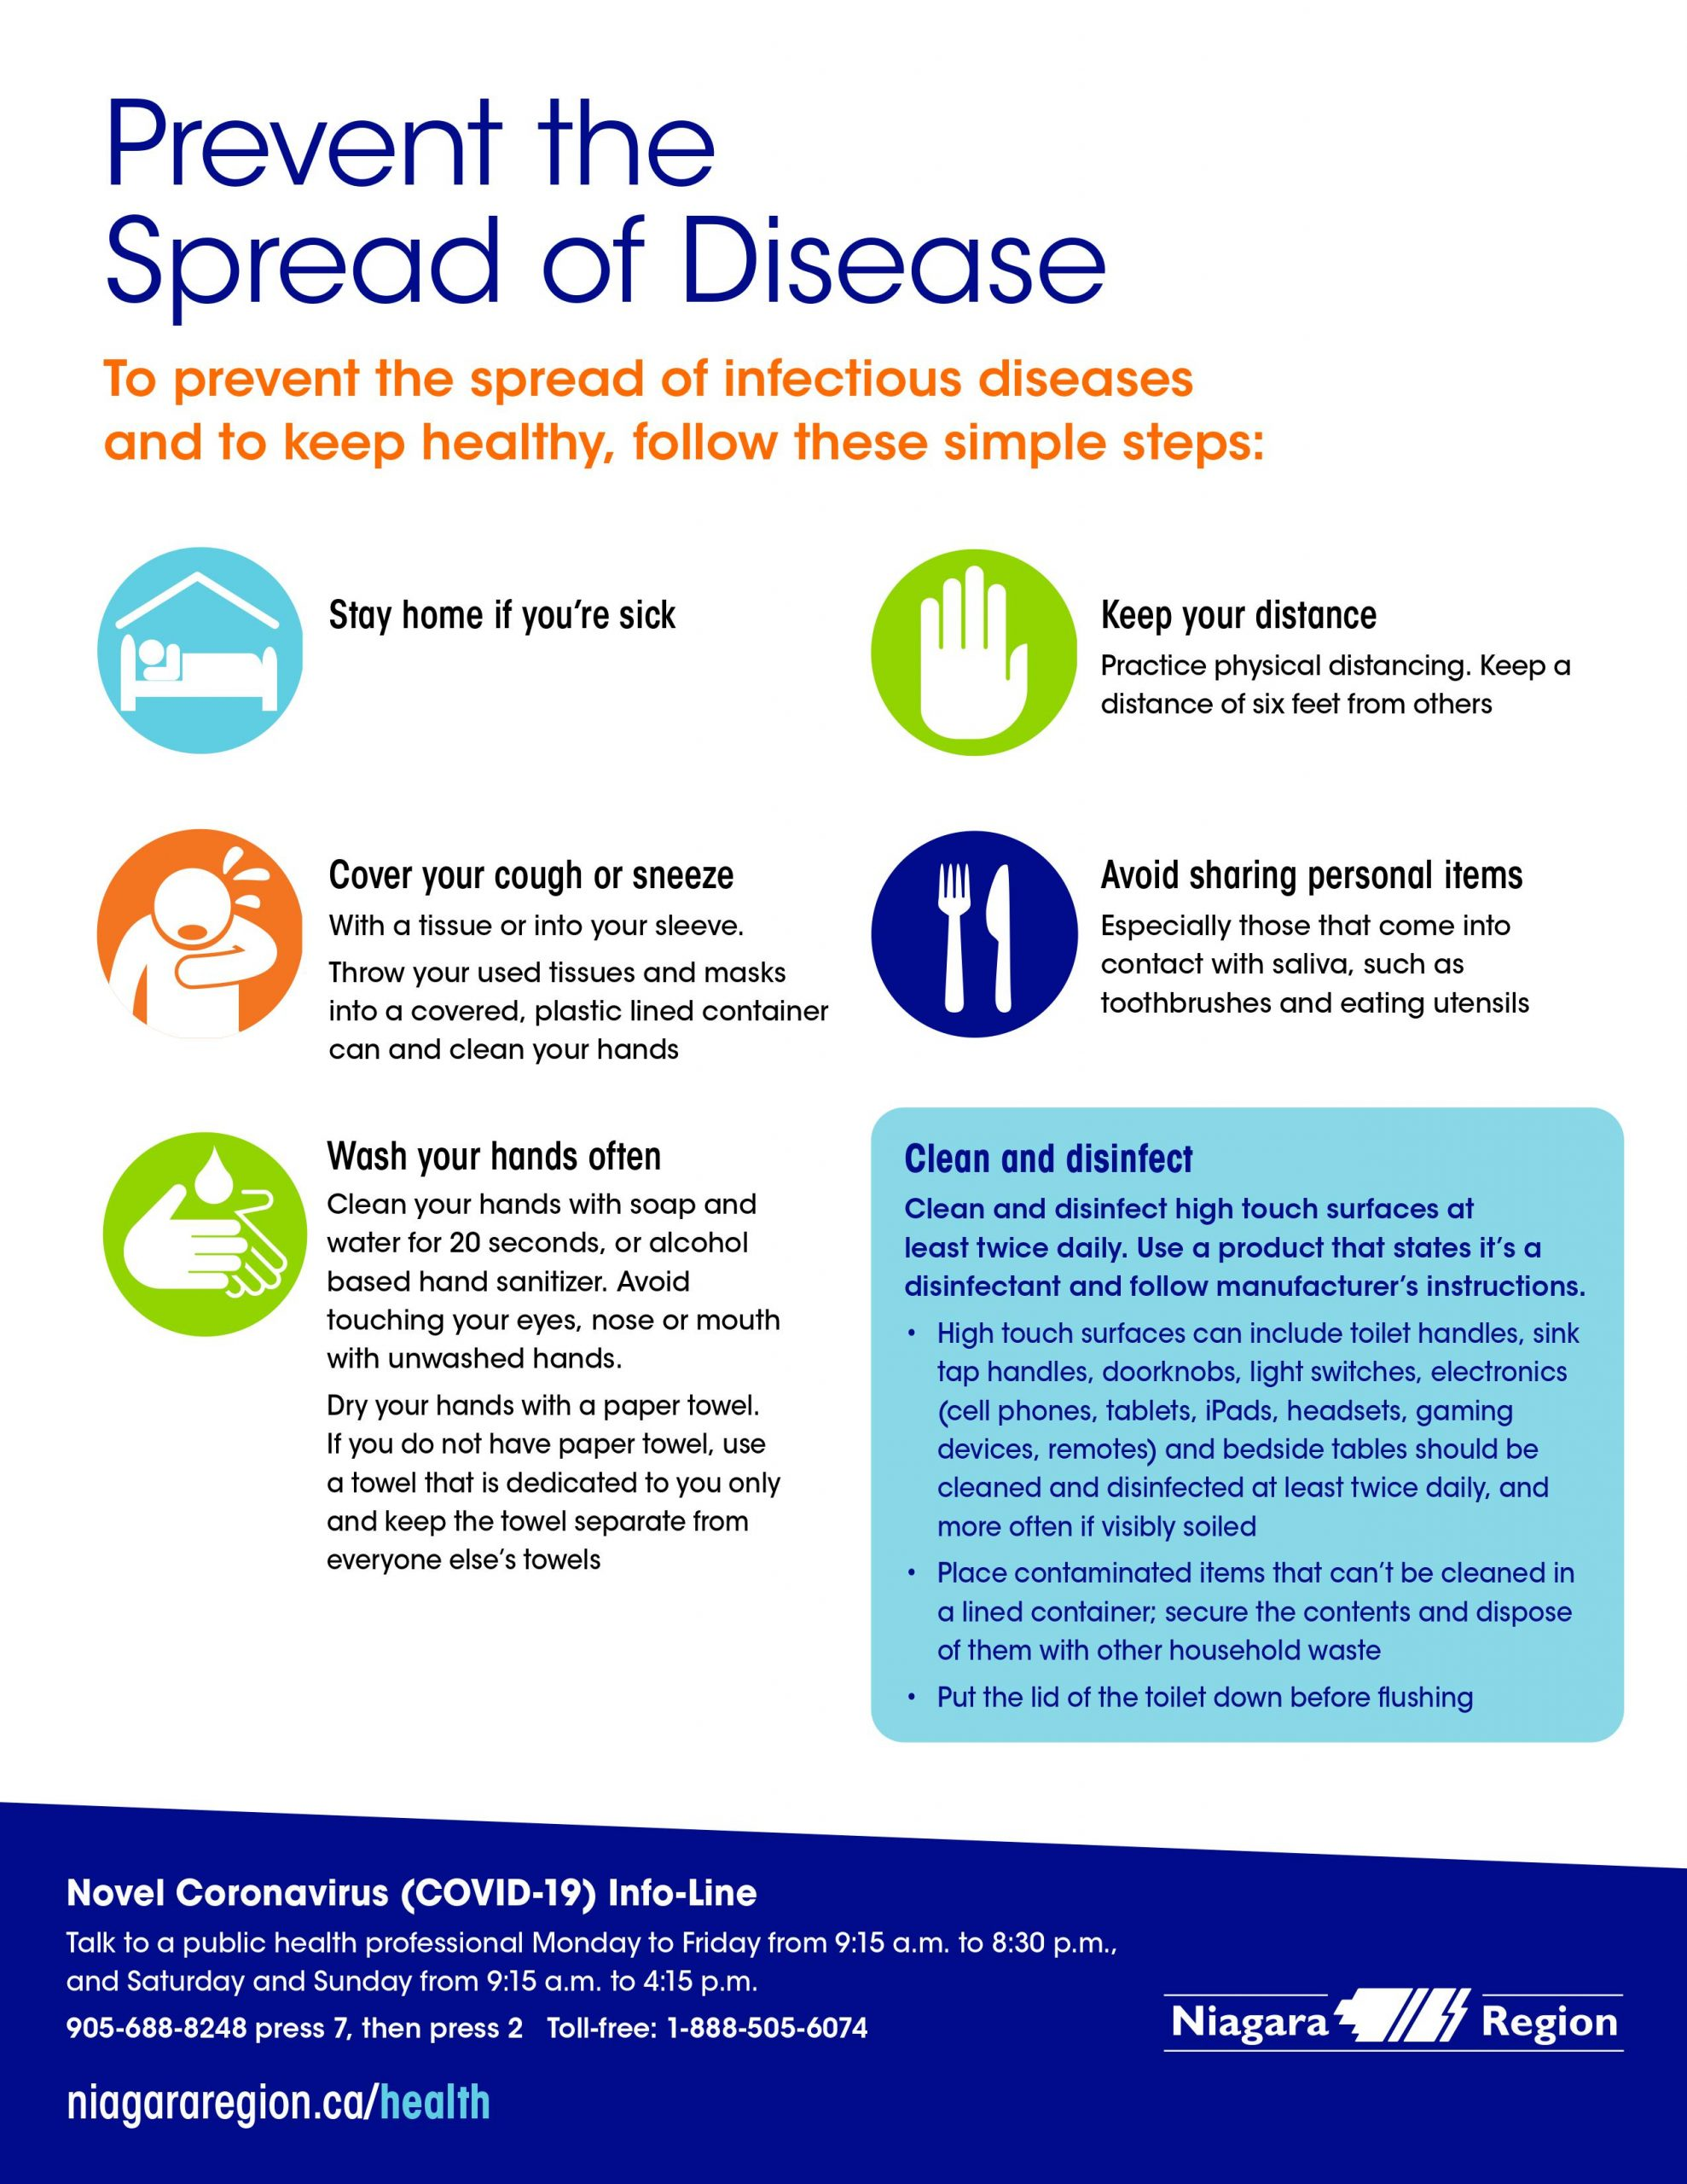 Prevent the Spread of Disease infographic